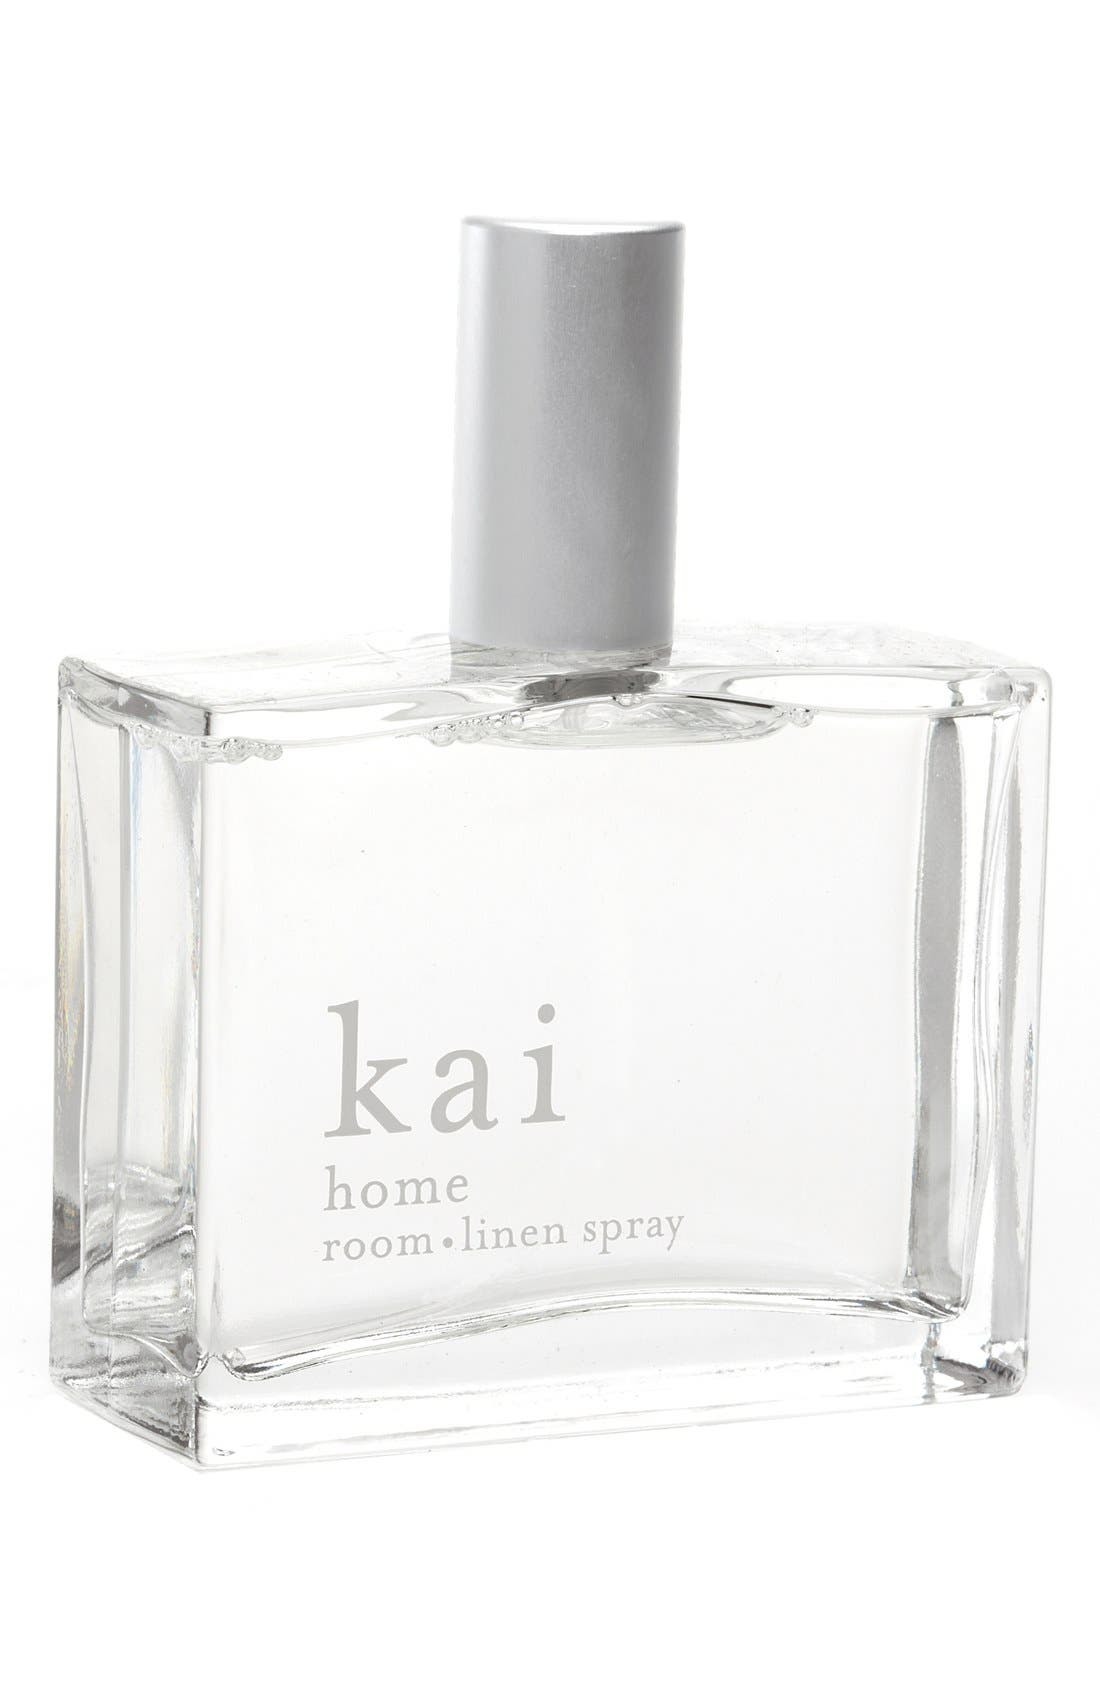 kai 'Home' Room & Linen Spray